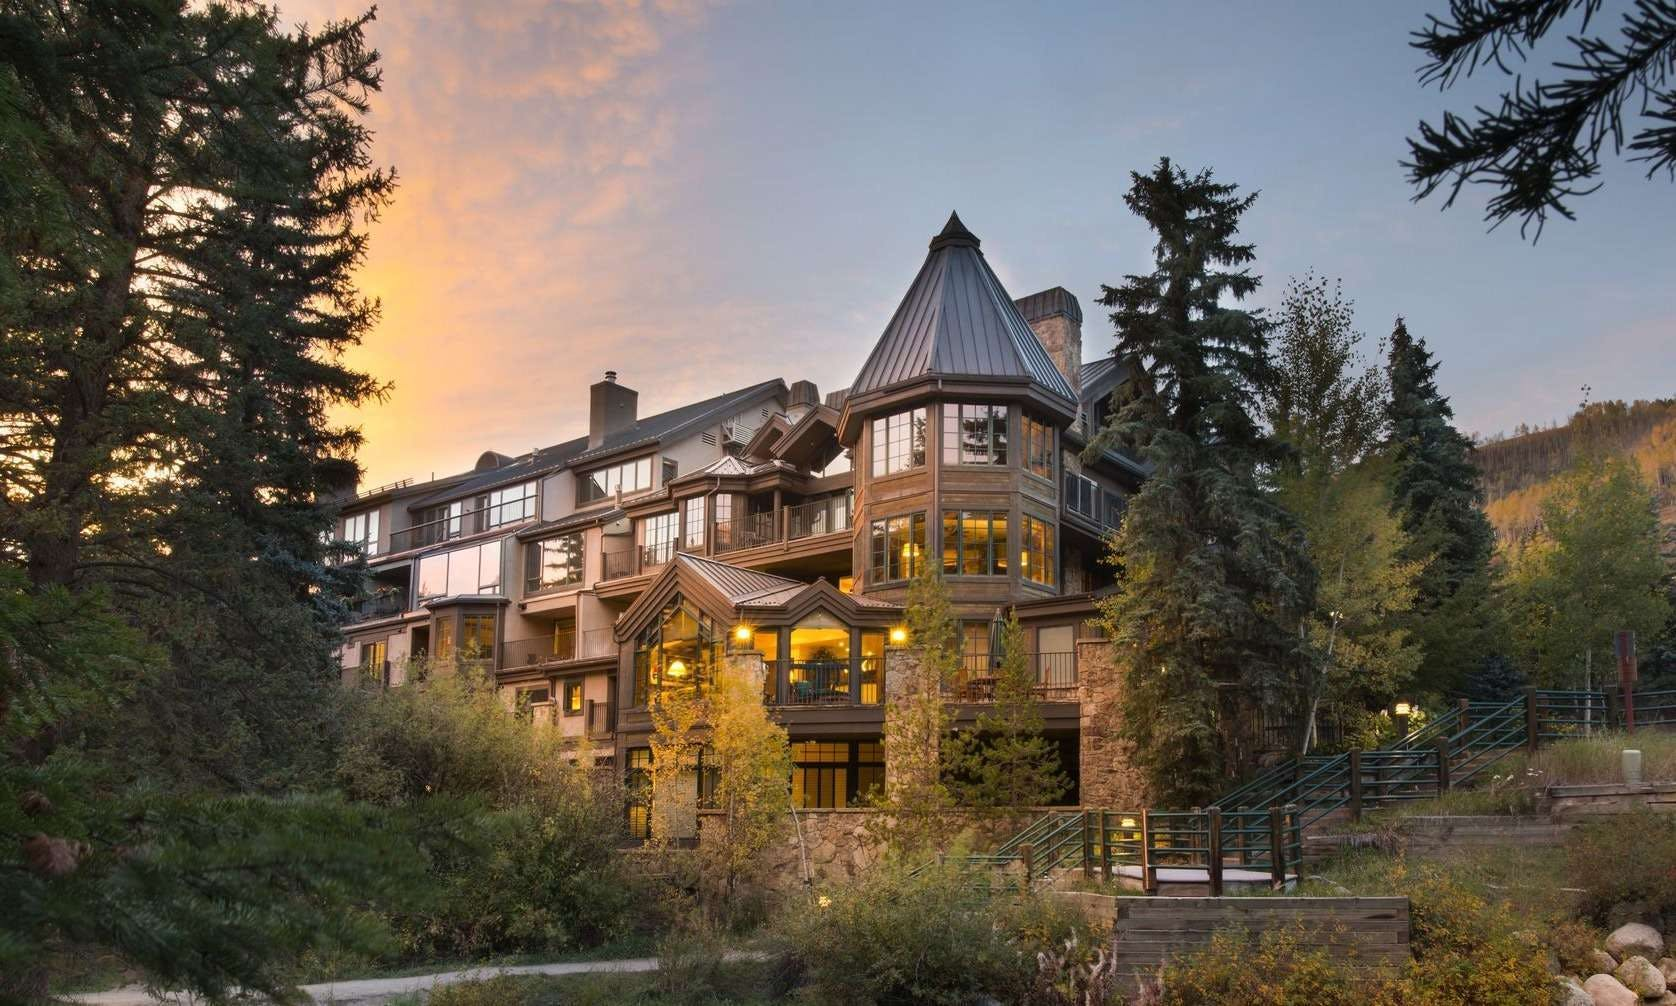 Tivoli Lodge Vail Last Minute Hotel Deals In Vail Hoteltonight